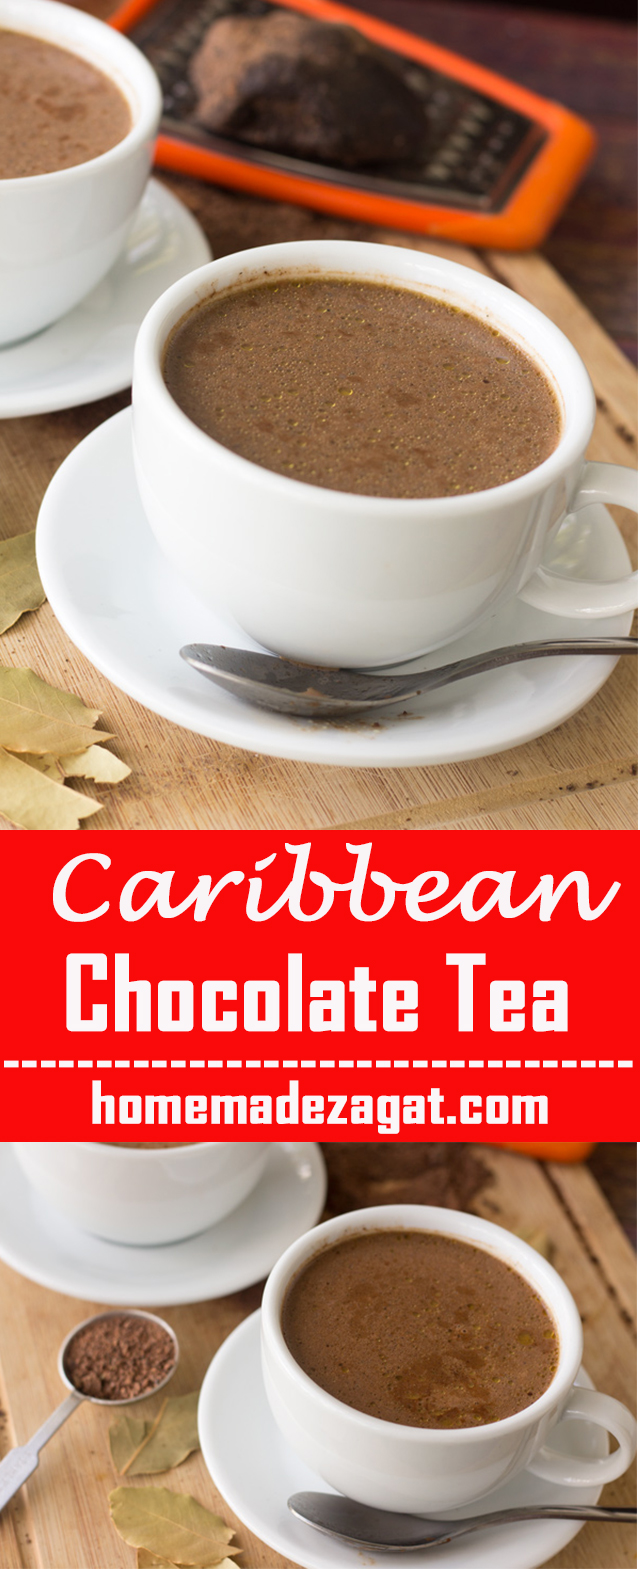 Caribbean Chocolate Tea Recipe